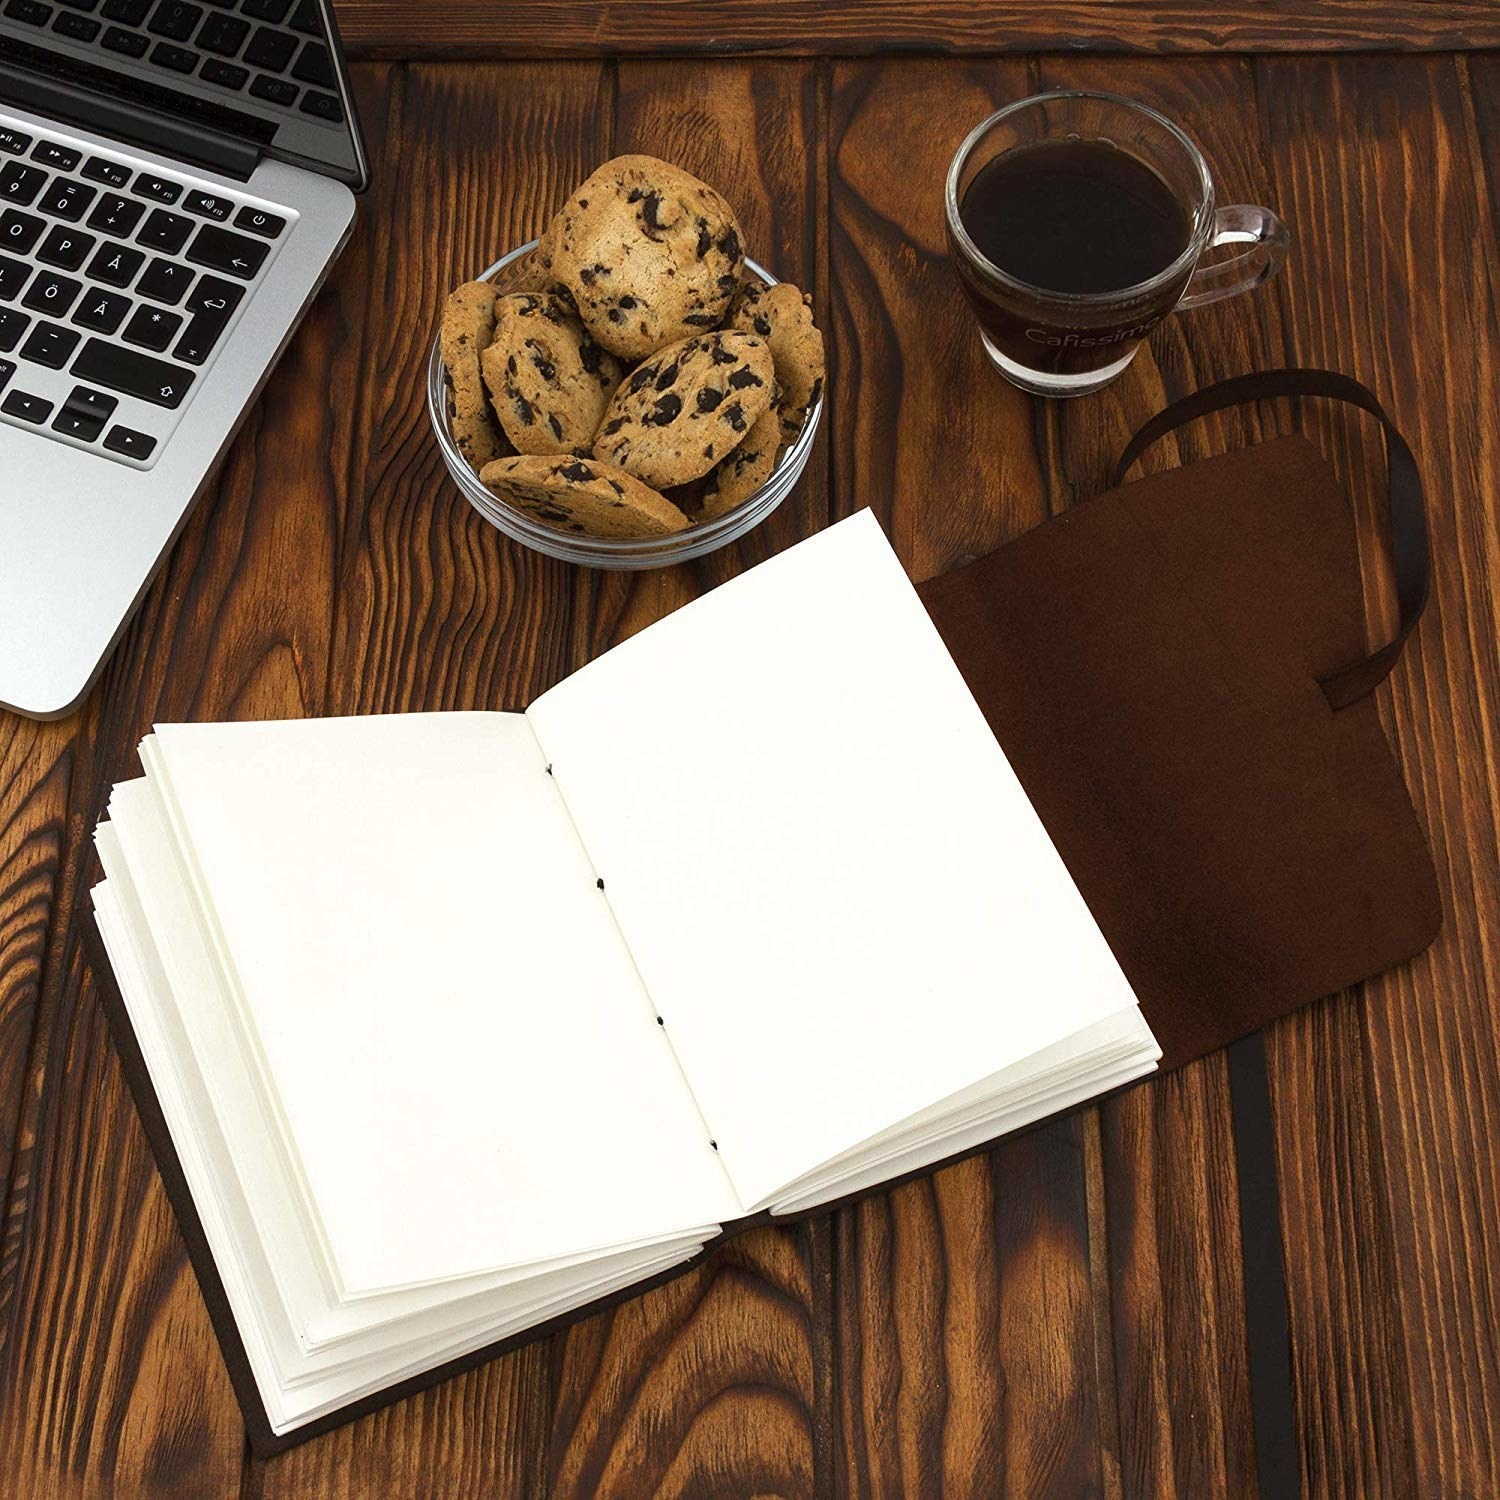 The journal kept on a table with a cup of coffee, bowl of cookie, and laptop.